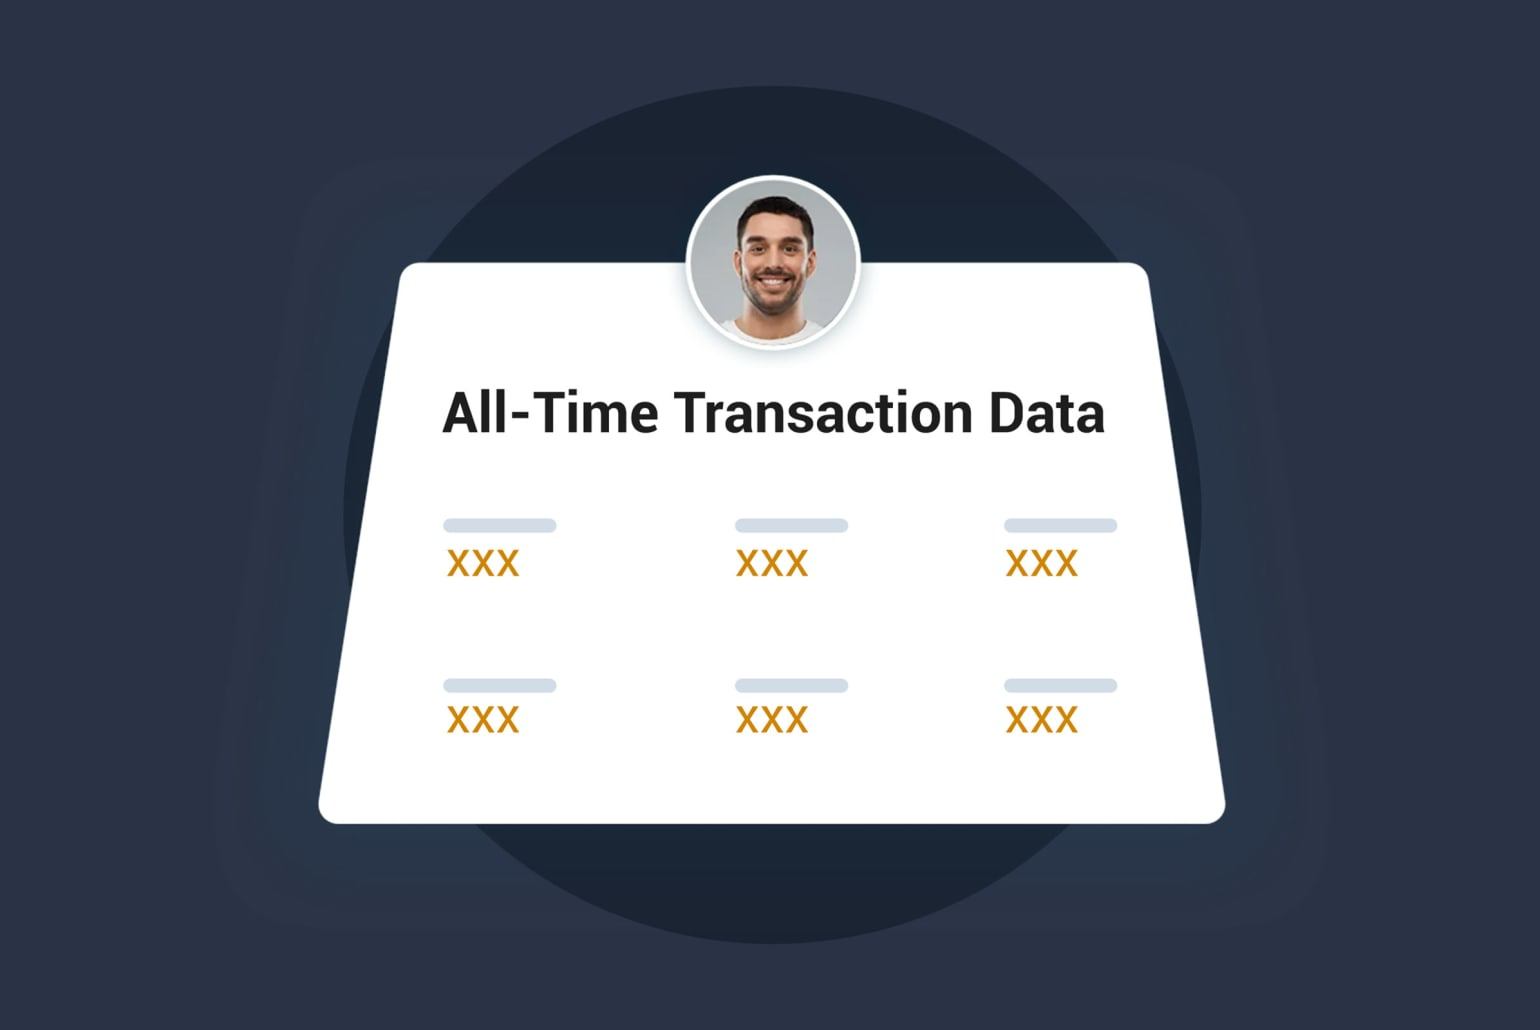 All About All-Time Transaction Data